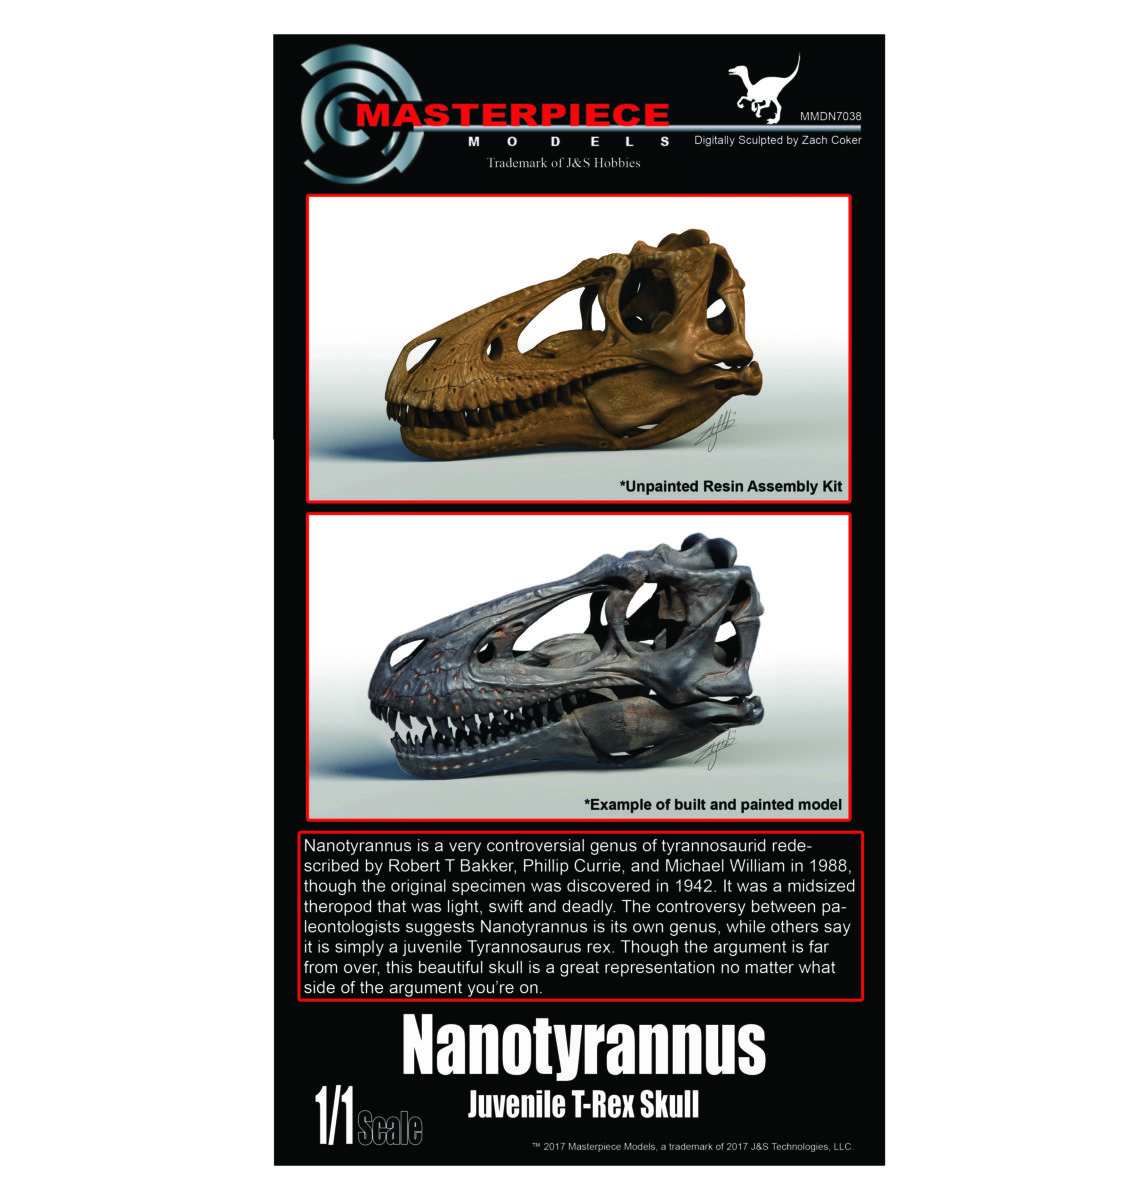 Nanotyrannus/juvenile T-Rex resin assembly kit.